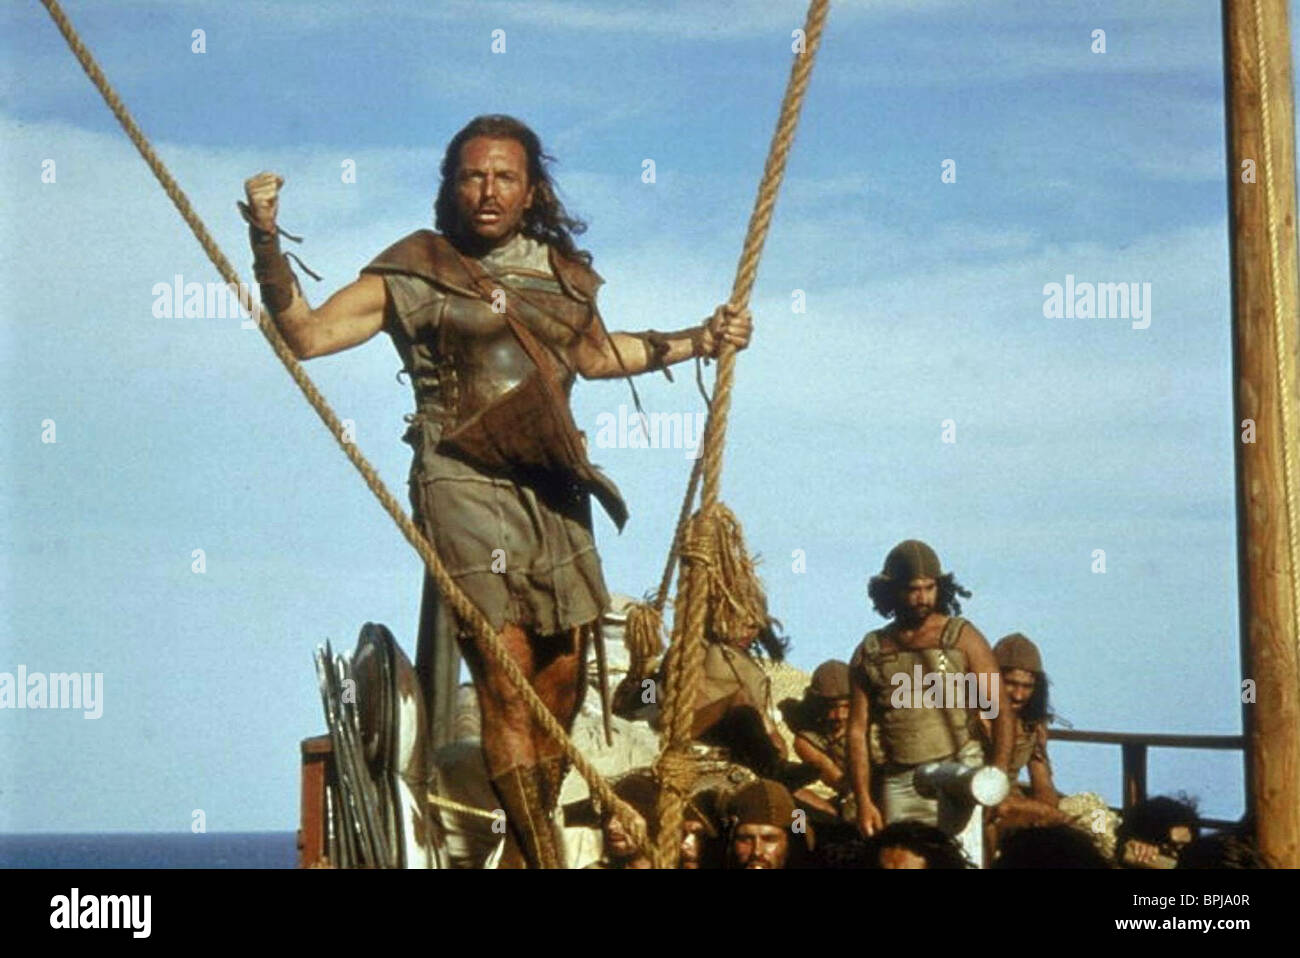 ARMAND ASSANTE THE ODYSSEY (1997) - Stock Image